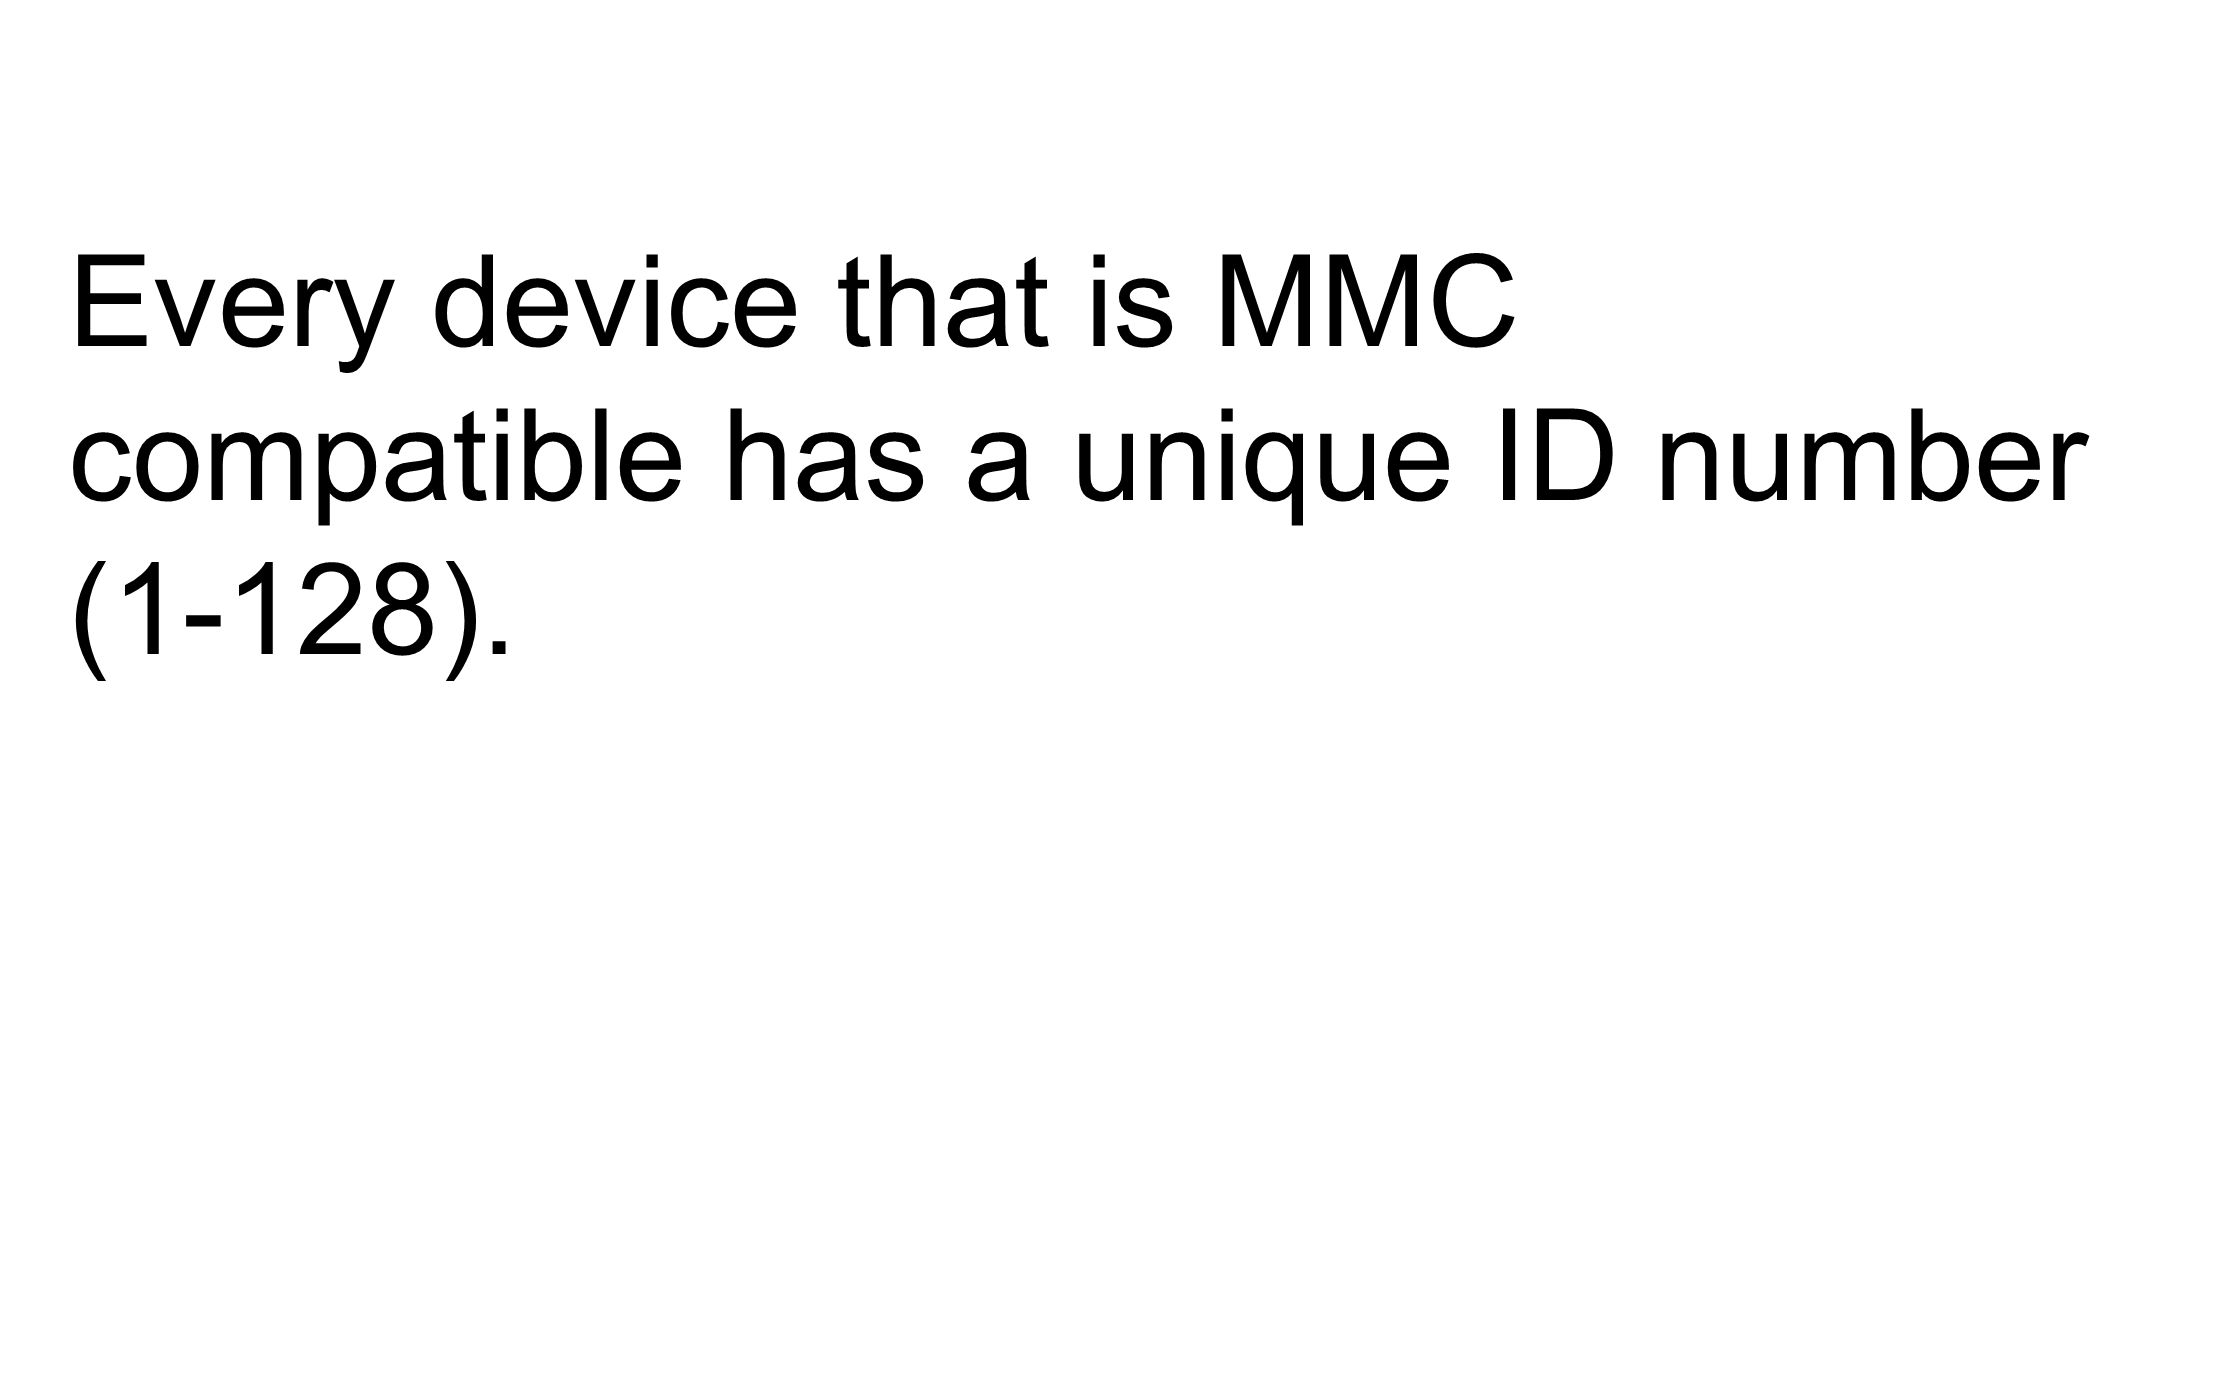 Each MMC device (tape deck, video deck, drum machine, etc) should be assigned to its own ID number so that each device can be individually controlled.